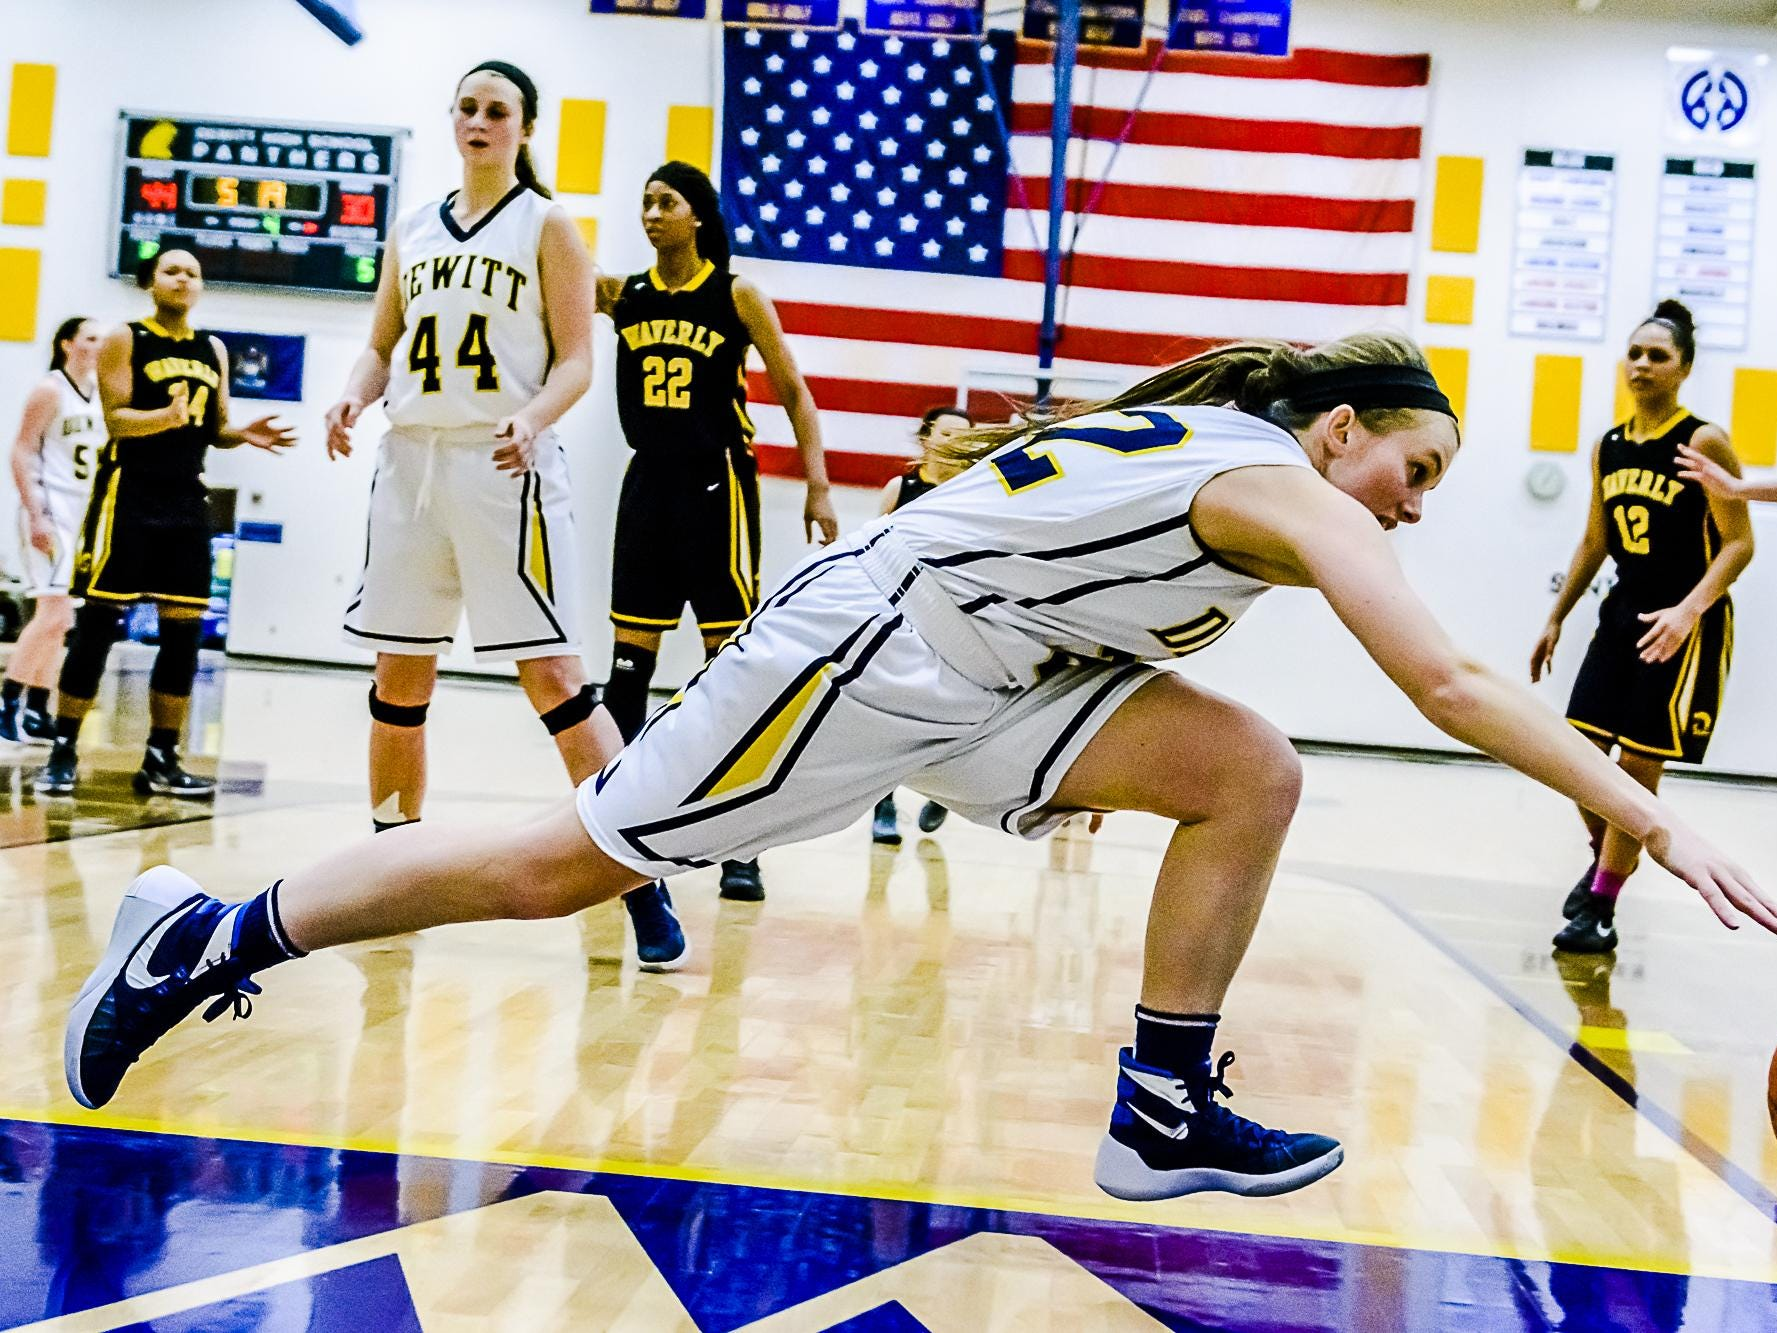 Jessah McManus of DeWitt chases a loose ball out of bounds during the Panthers' game with Waverly Friday February 12, 2016 in DeWitt. KEVIN W. FOWLER PHOTO